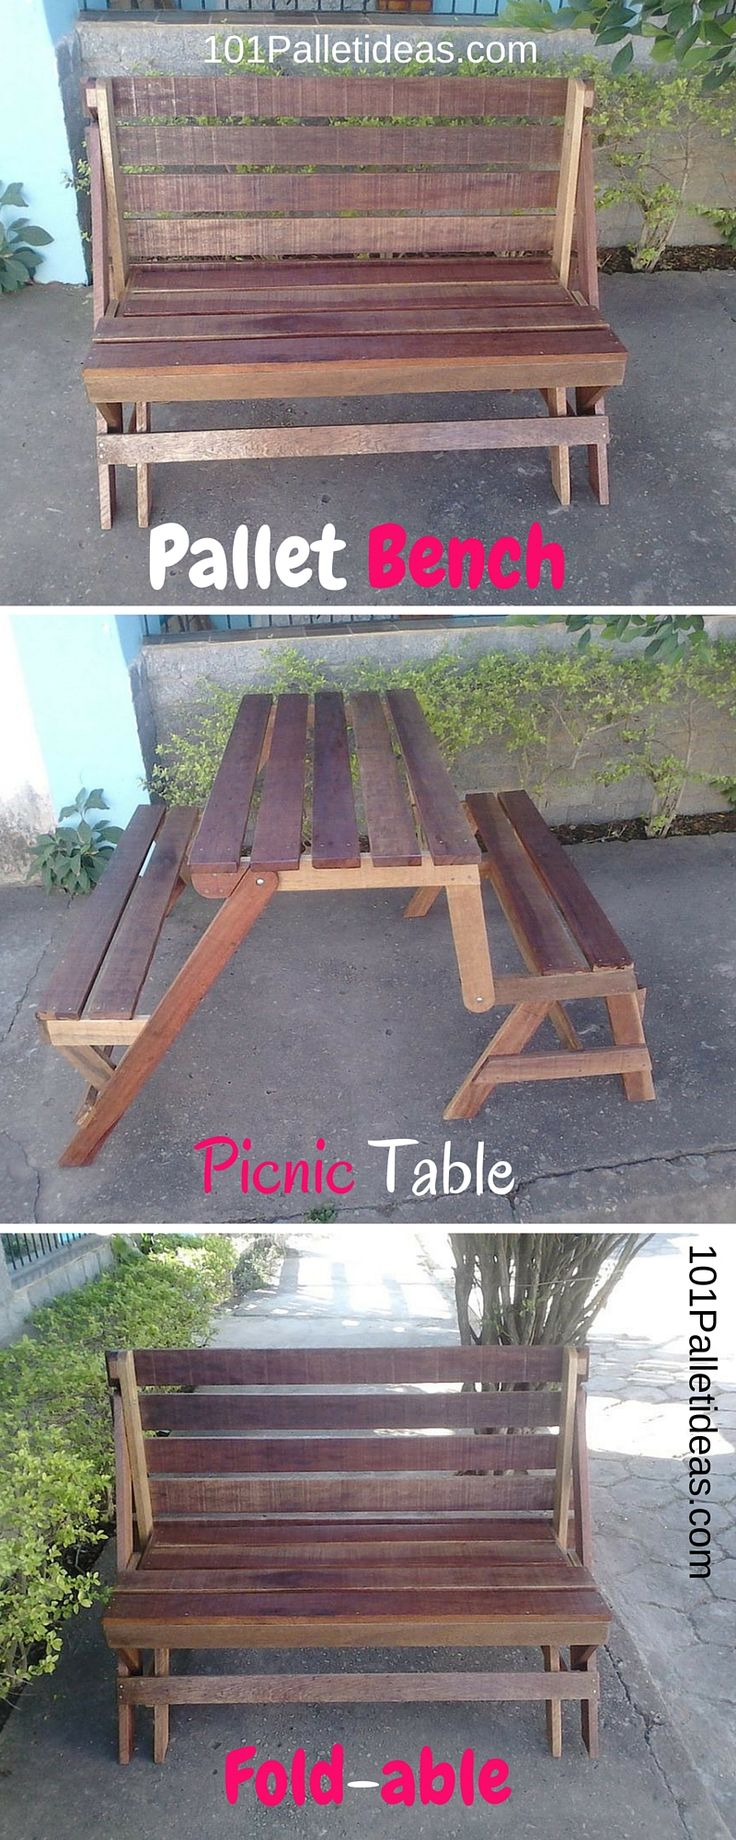 DIY Fold-able #Pallet #Bench – Picnic Table - 101 Pallet Ideas